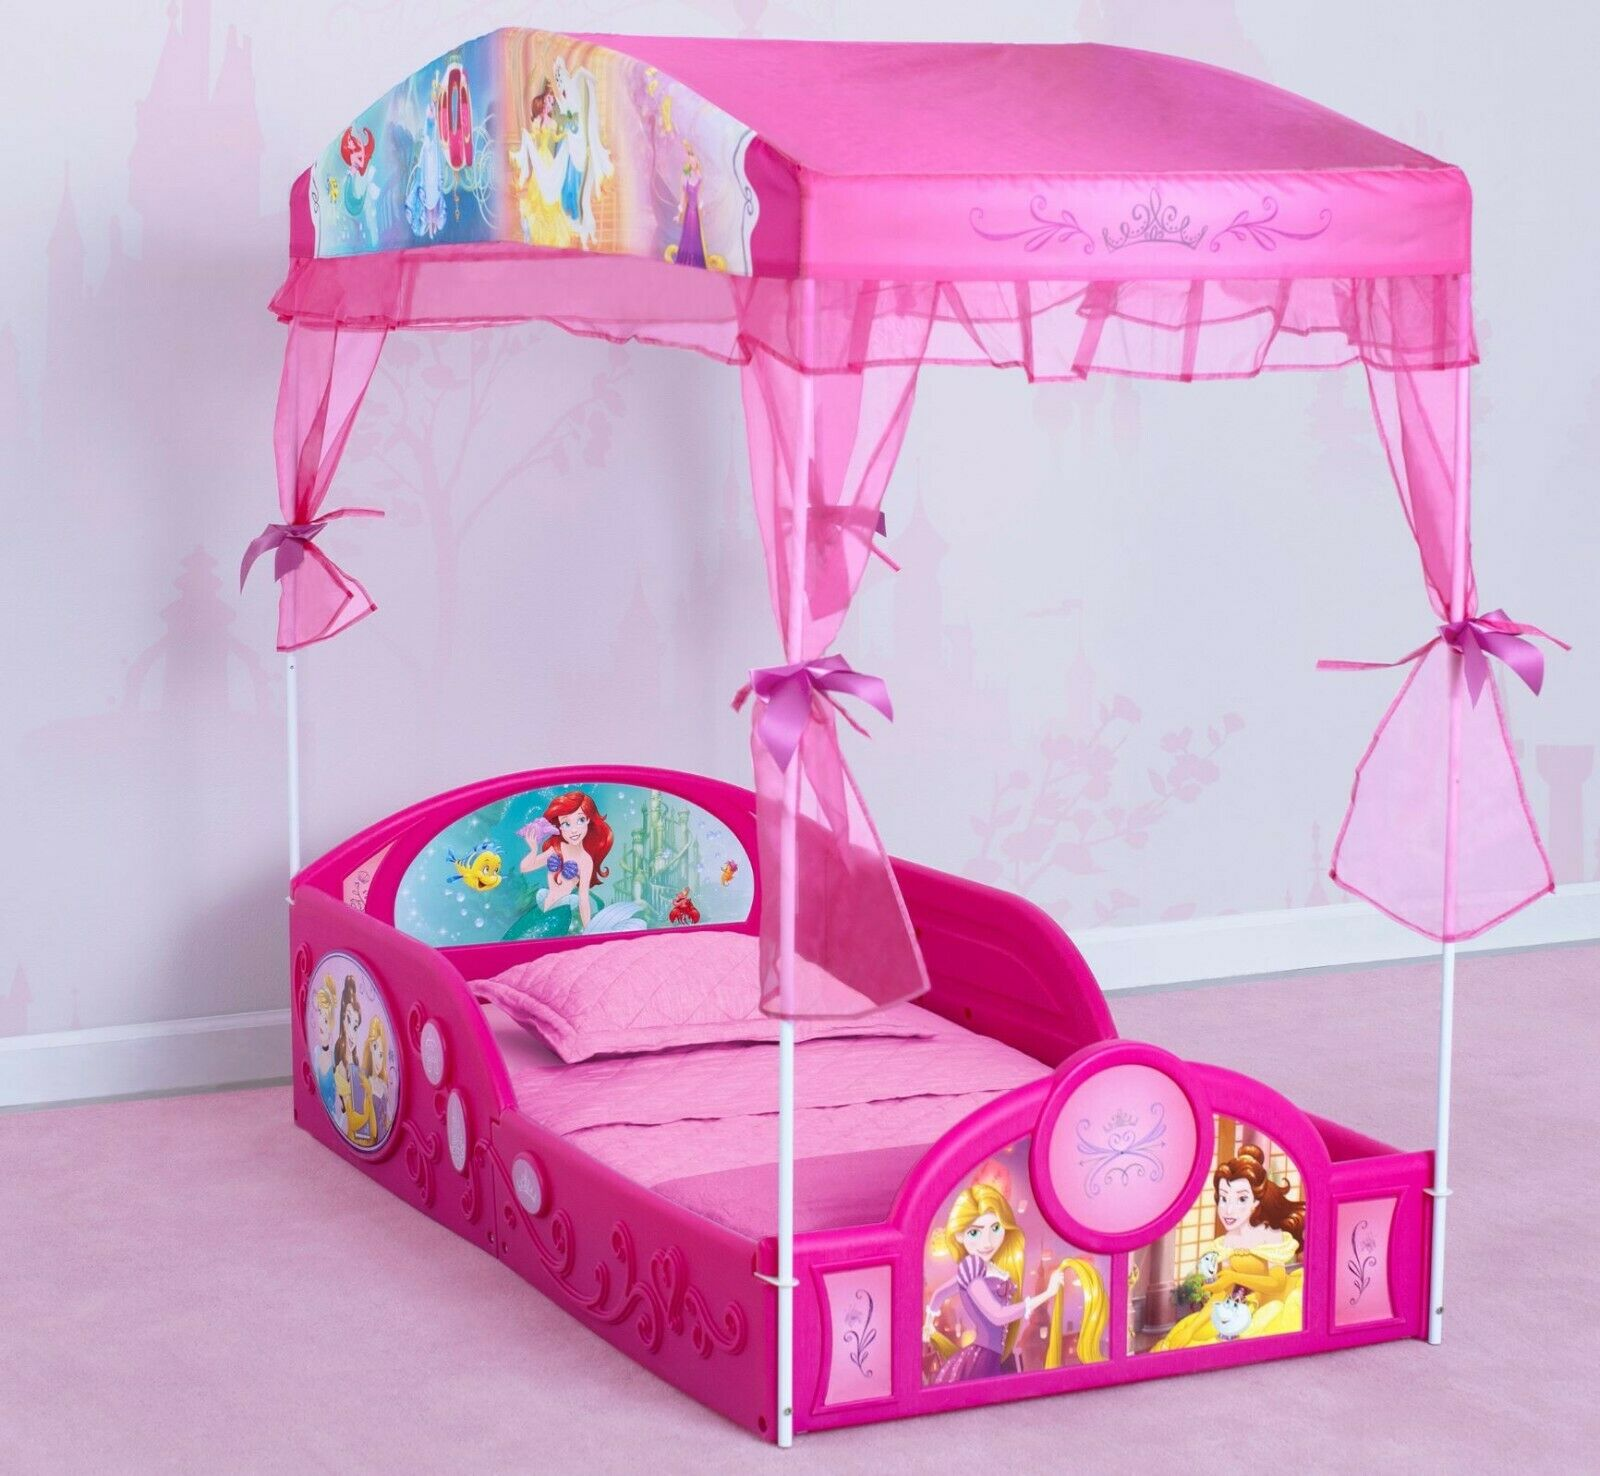 Frozen Toddlers Bed Bedroom Furniture Kids Girls Princess Disney Children Home For Sale Online Ebay